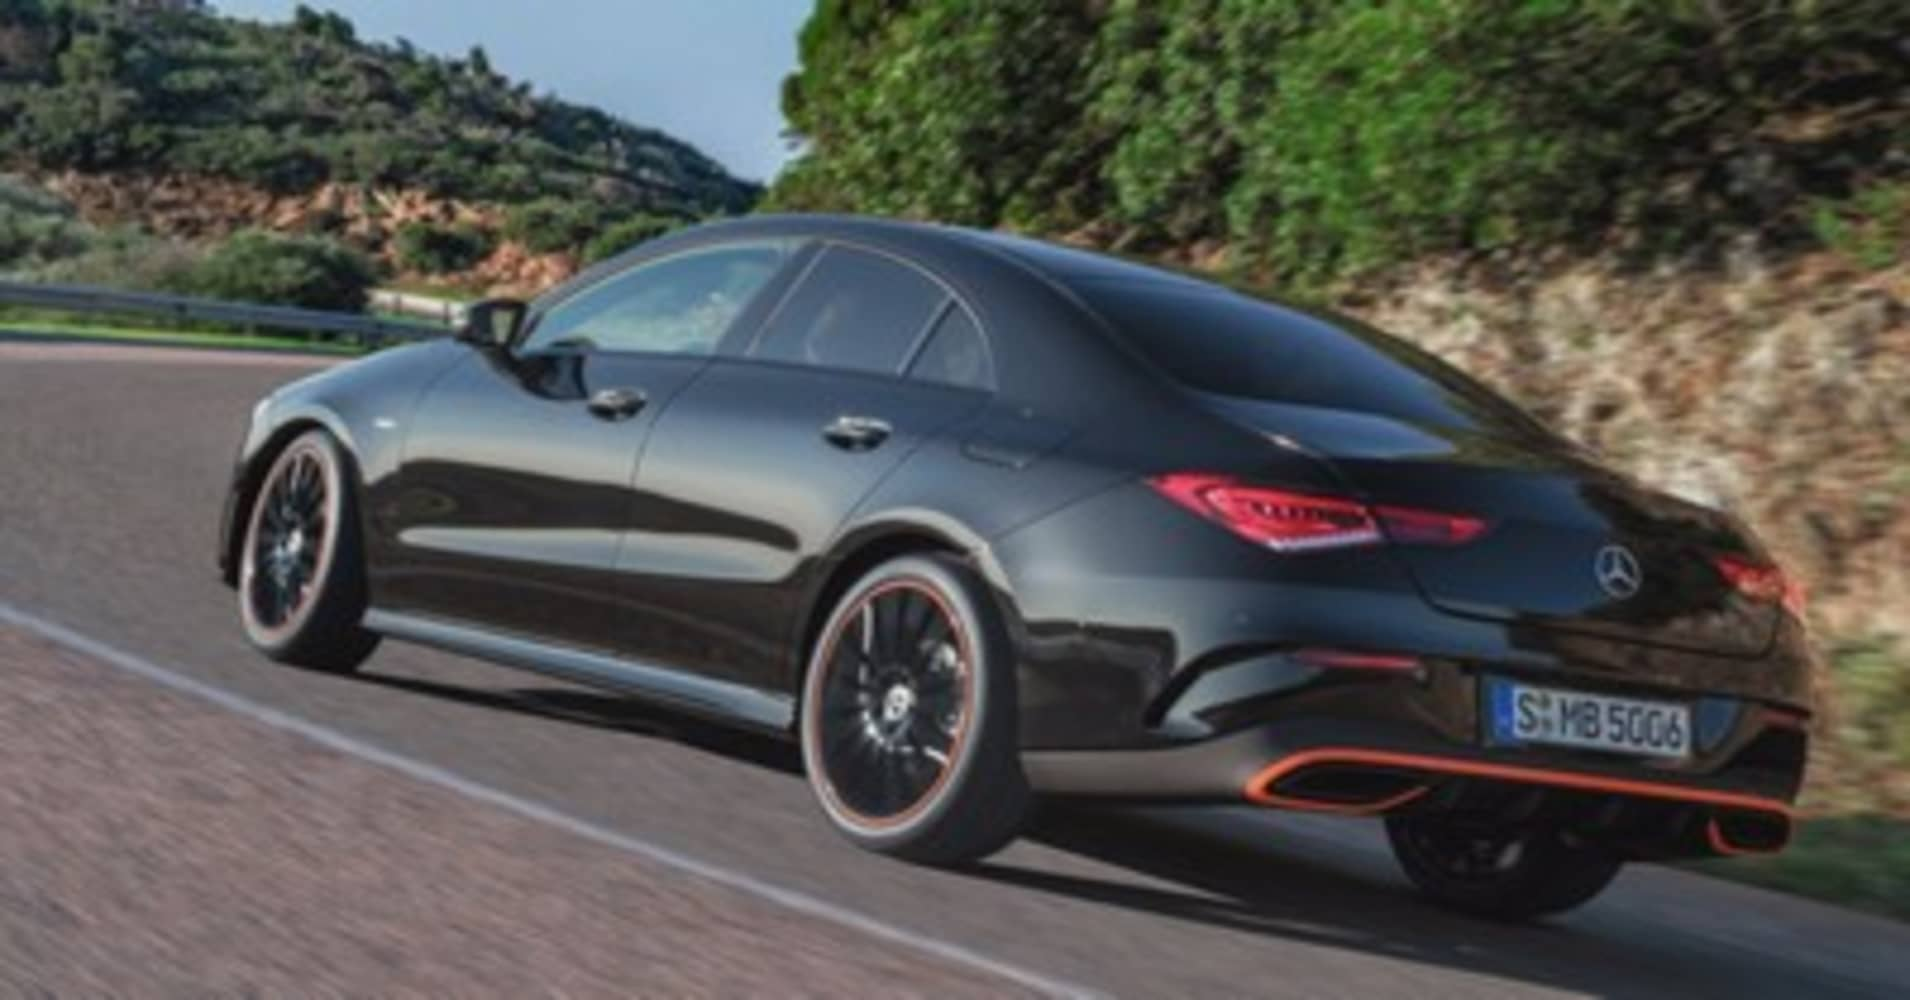 Mercedes Cla Coupe Loaded With High Tech Extras To Lure Millennials